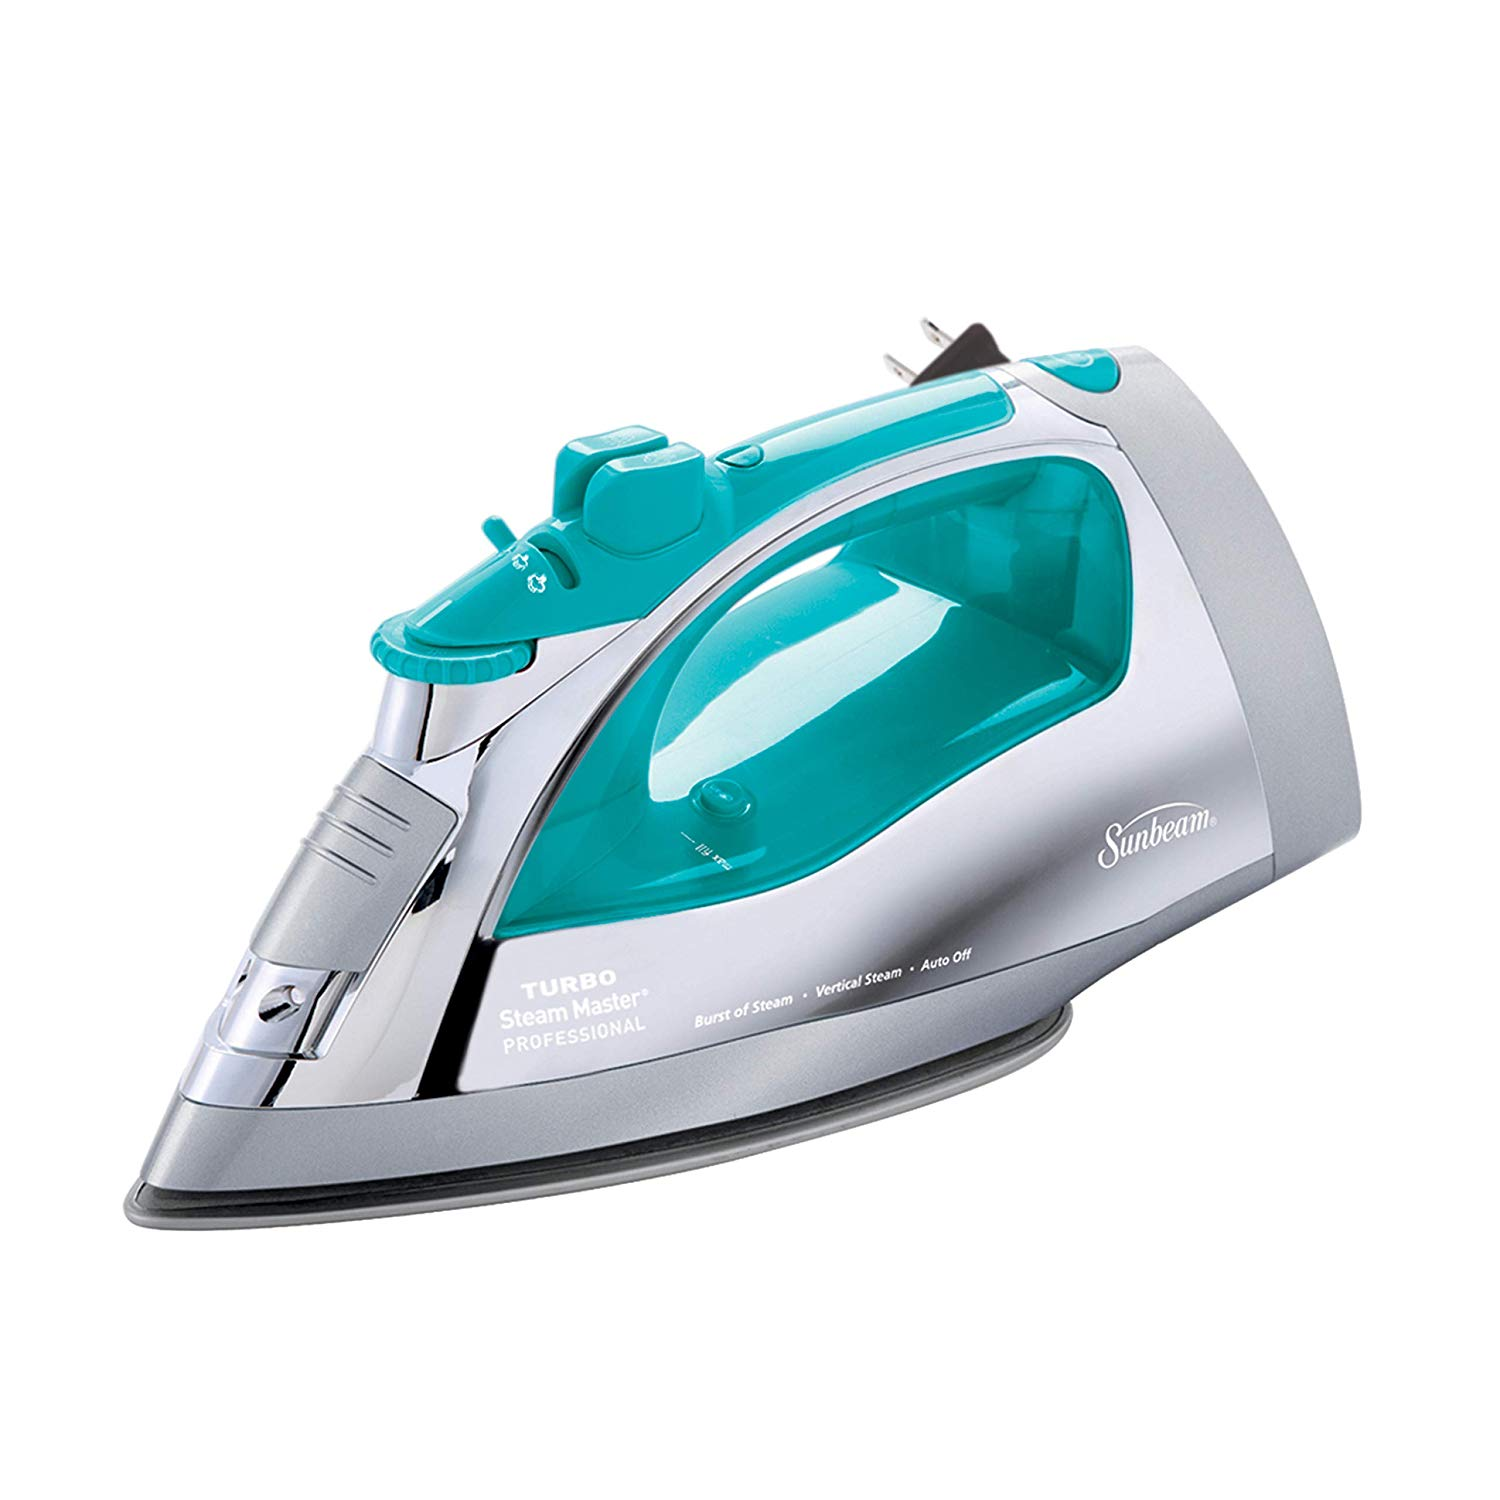 Sunbeam Steam master Steam Iron 2020 review